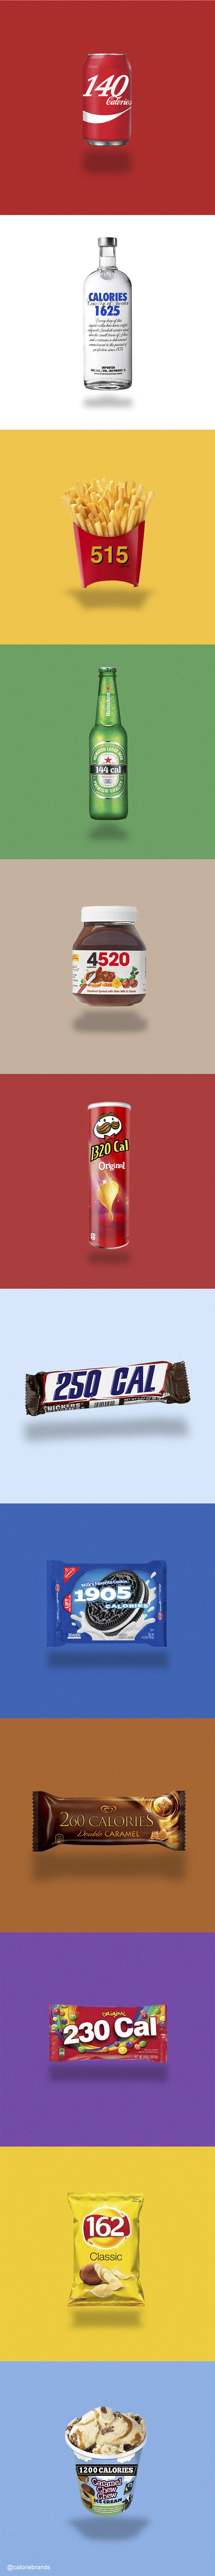 honest-product-logos-caloriebrands1-12